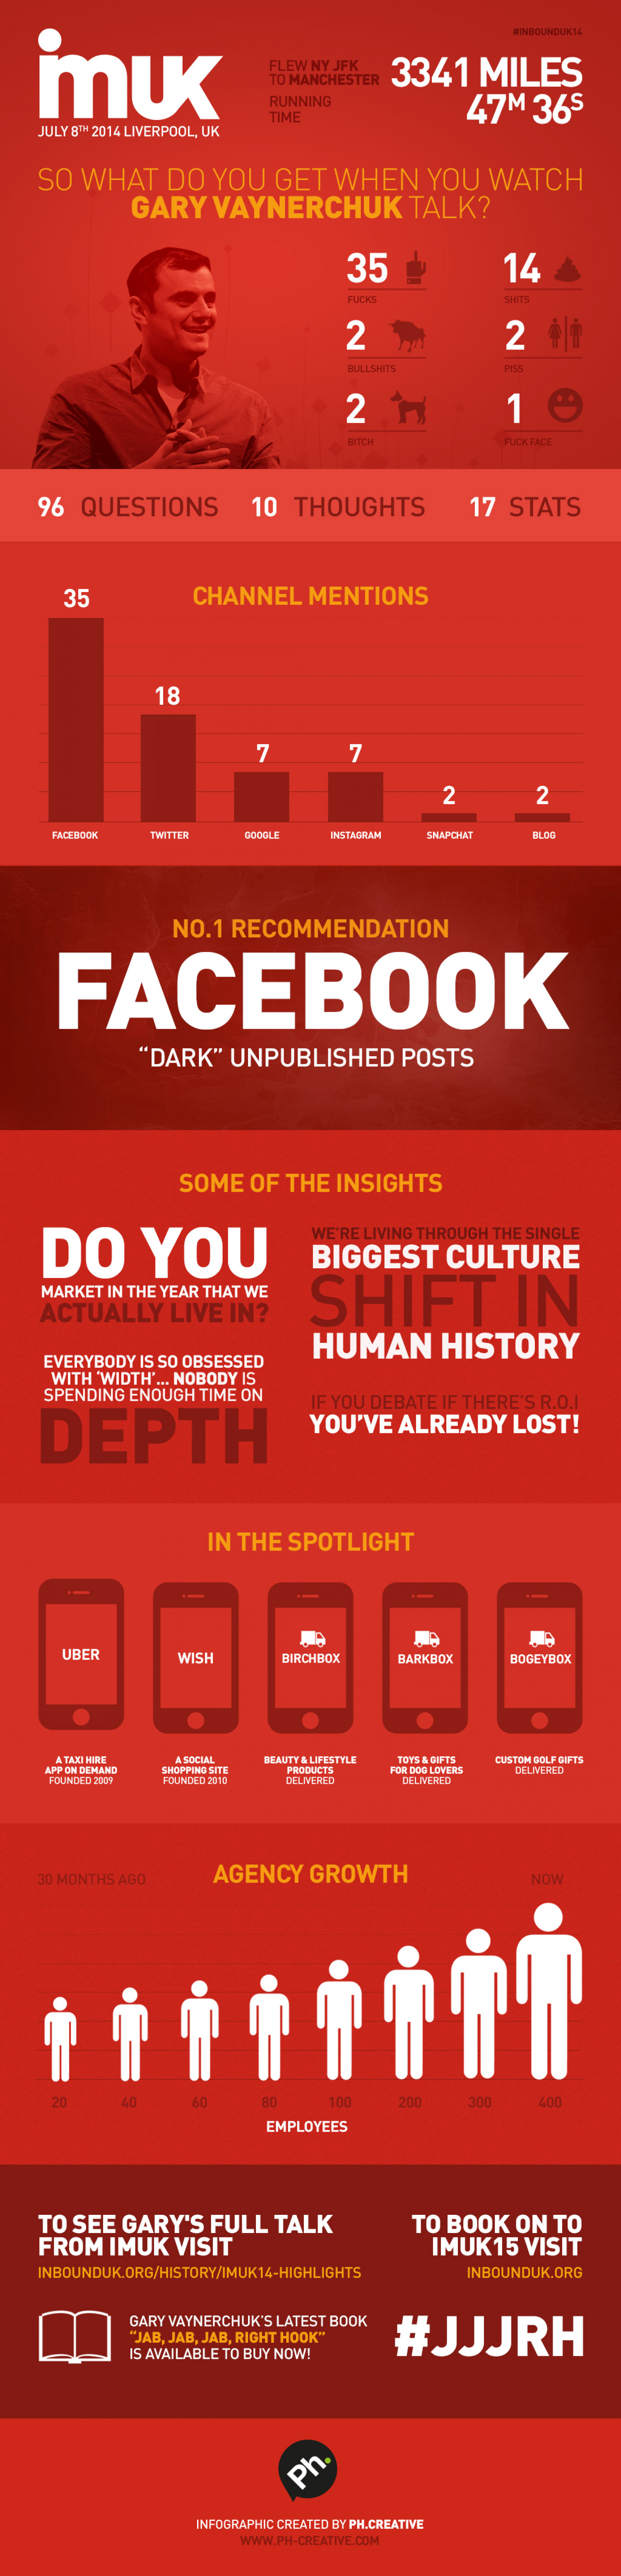 What Does An Hour With Gary Vaynerchuk Look Like? Infographic